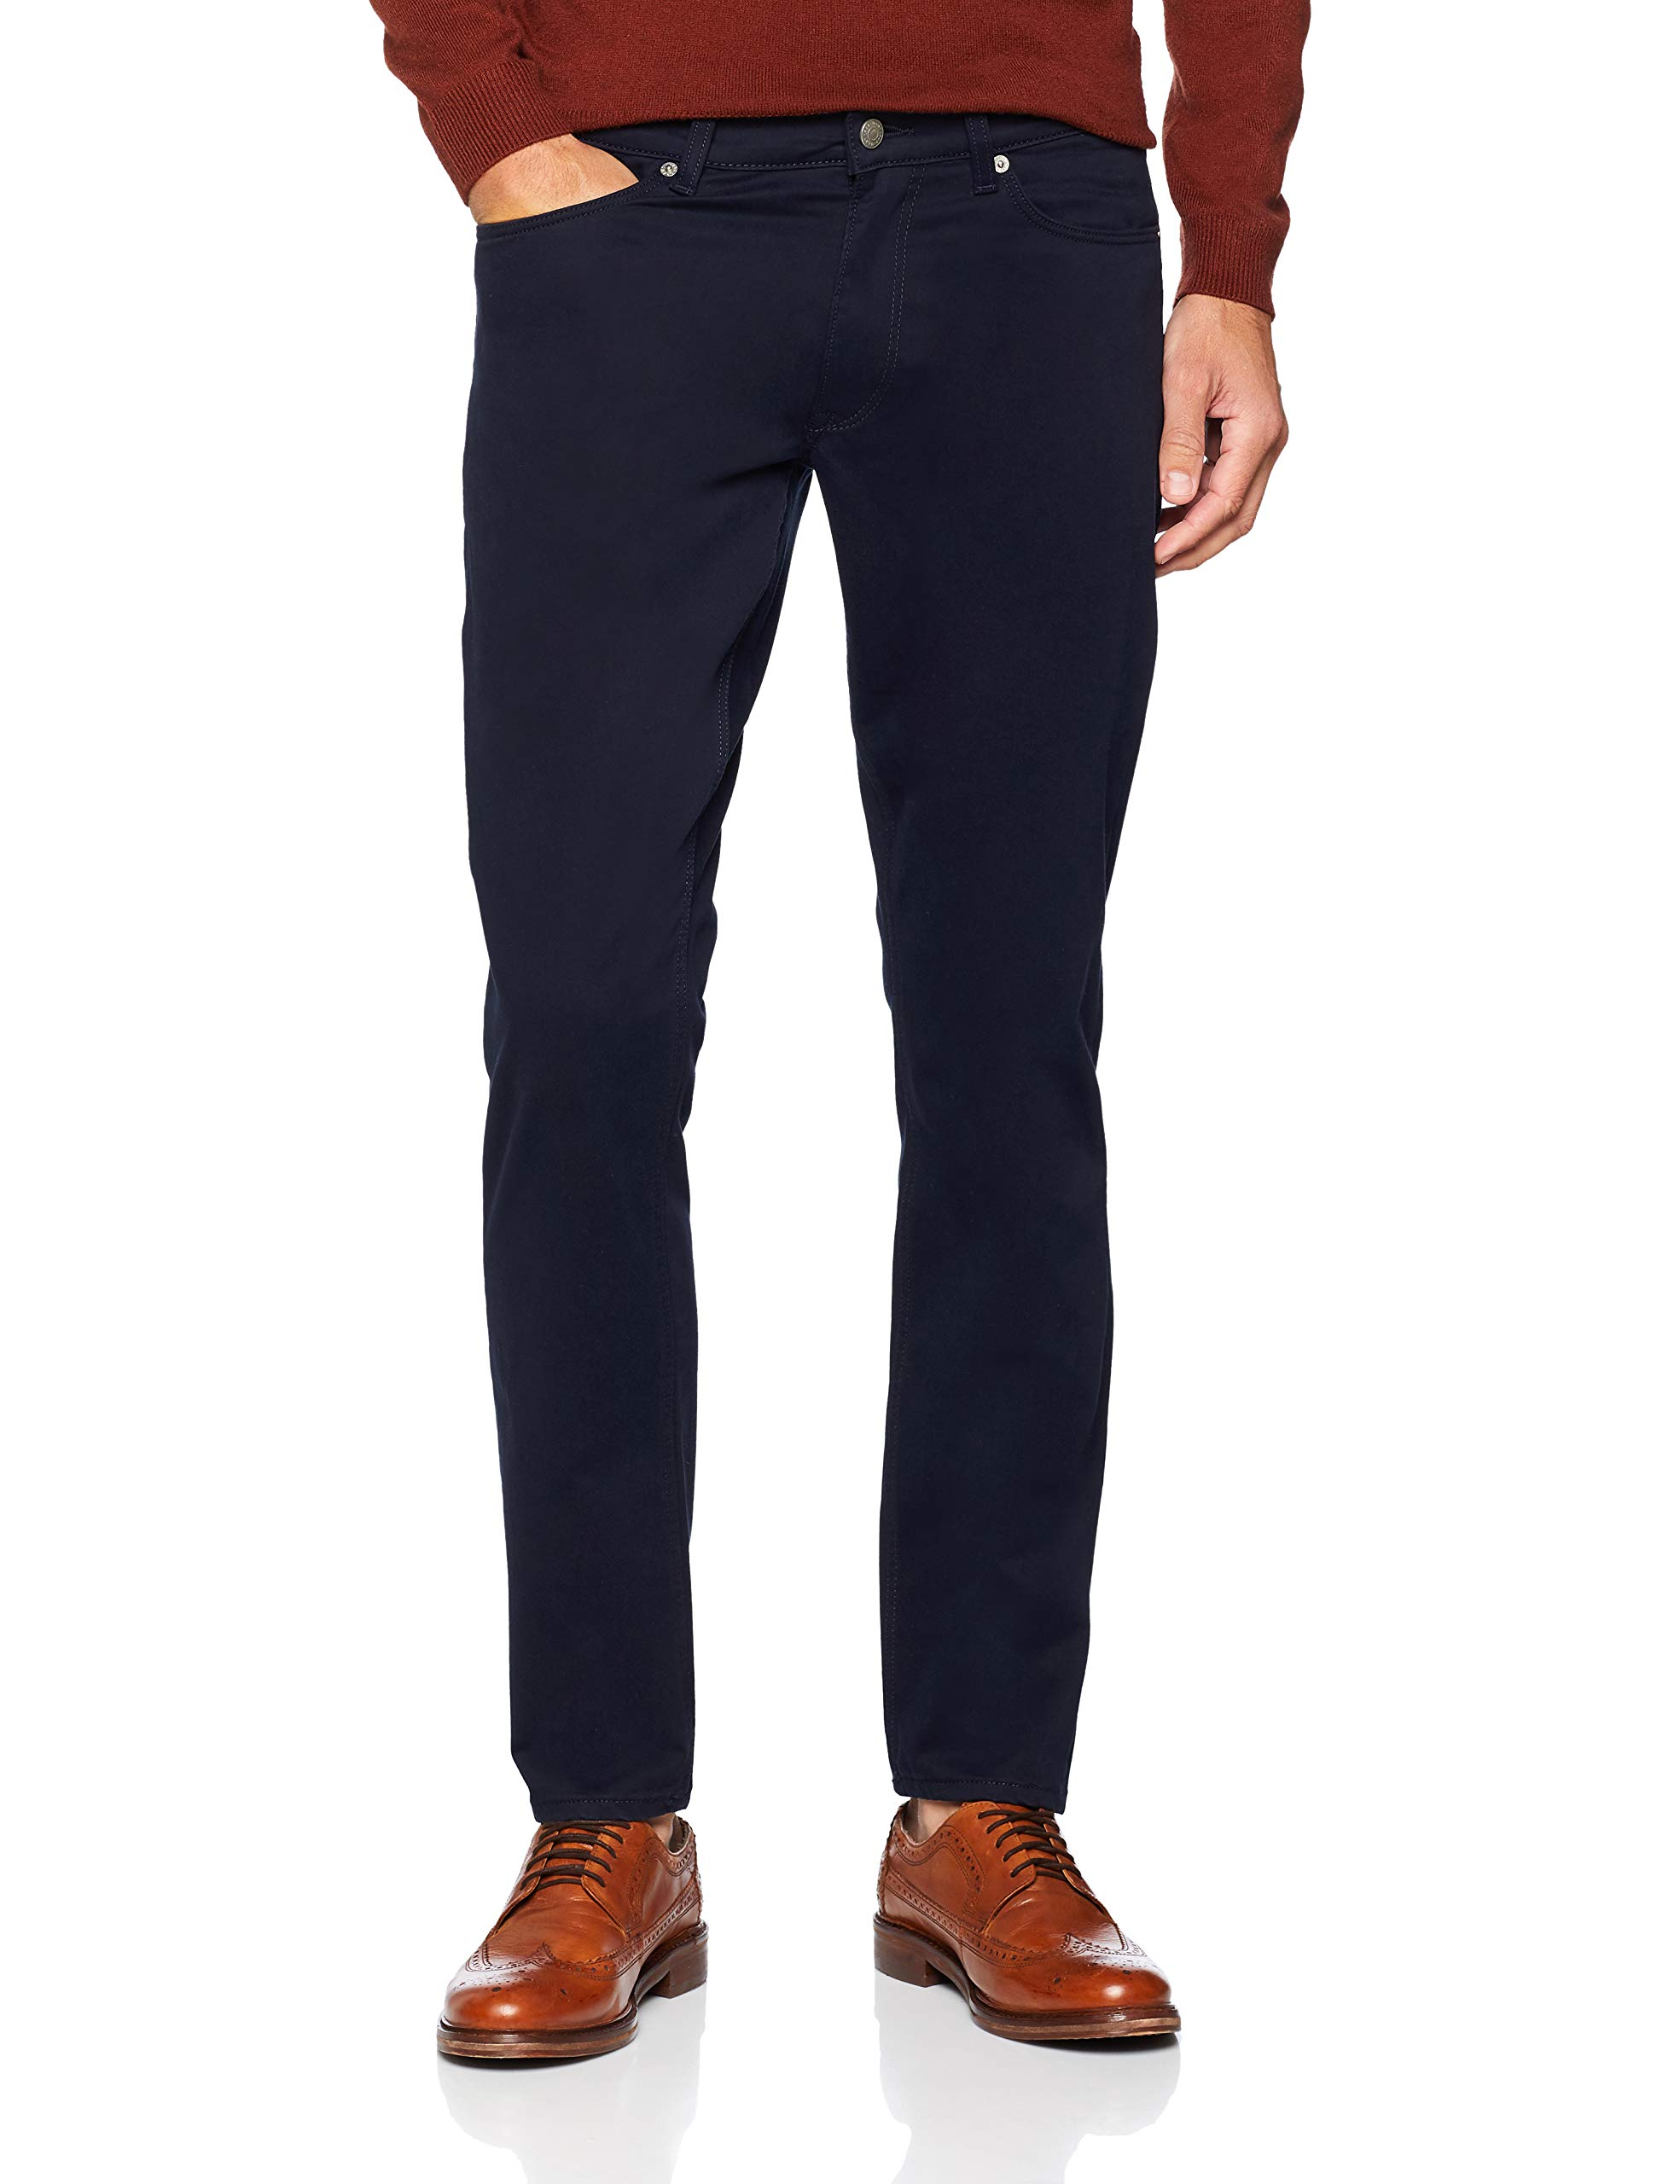 Jeans BlueW34 32Homme O1Tapered FuseauBleuevening Satin Gant l32taille Fabricant34 76bfgYy